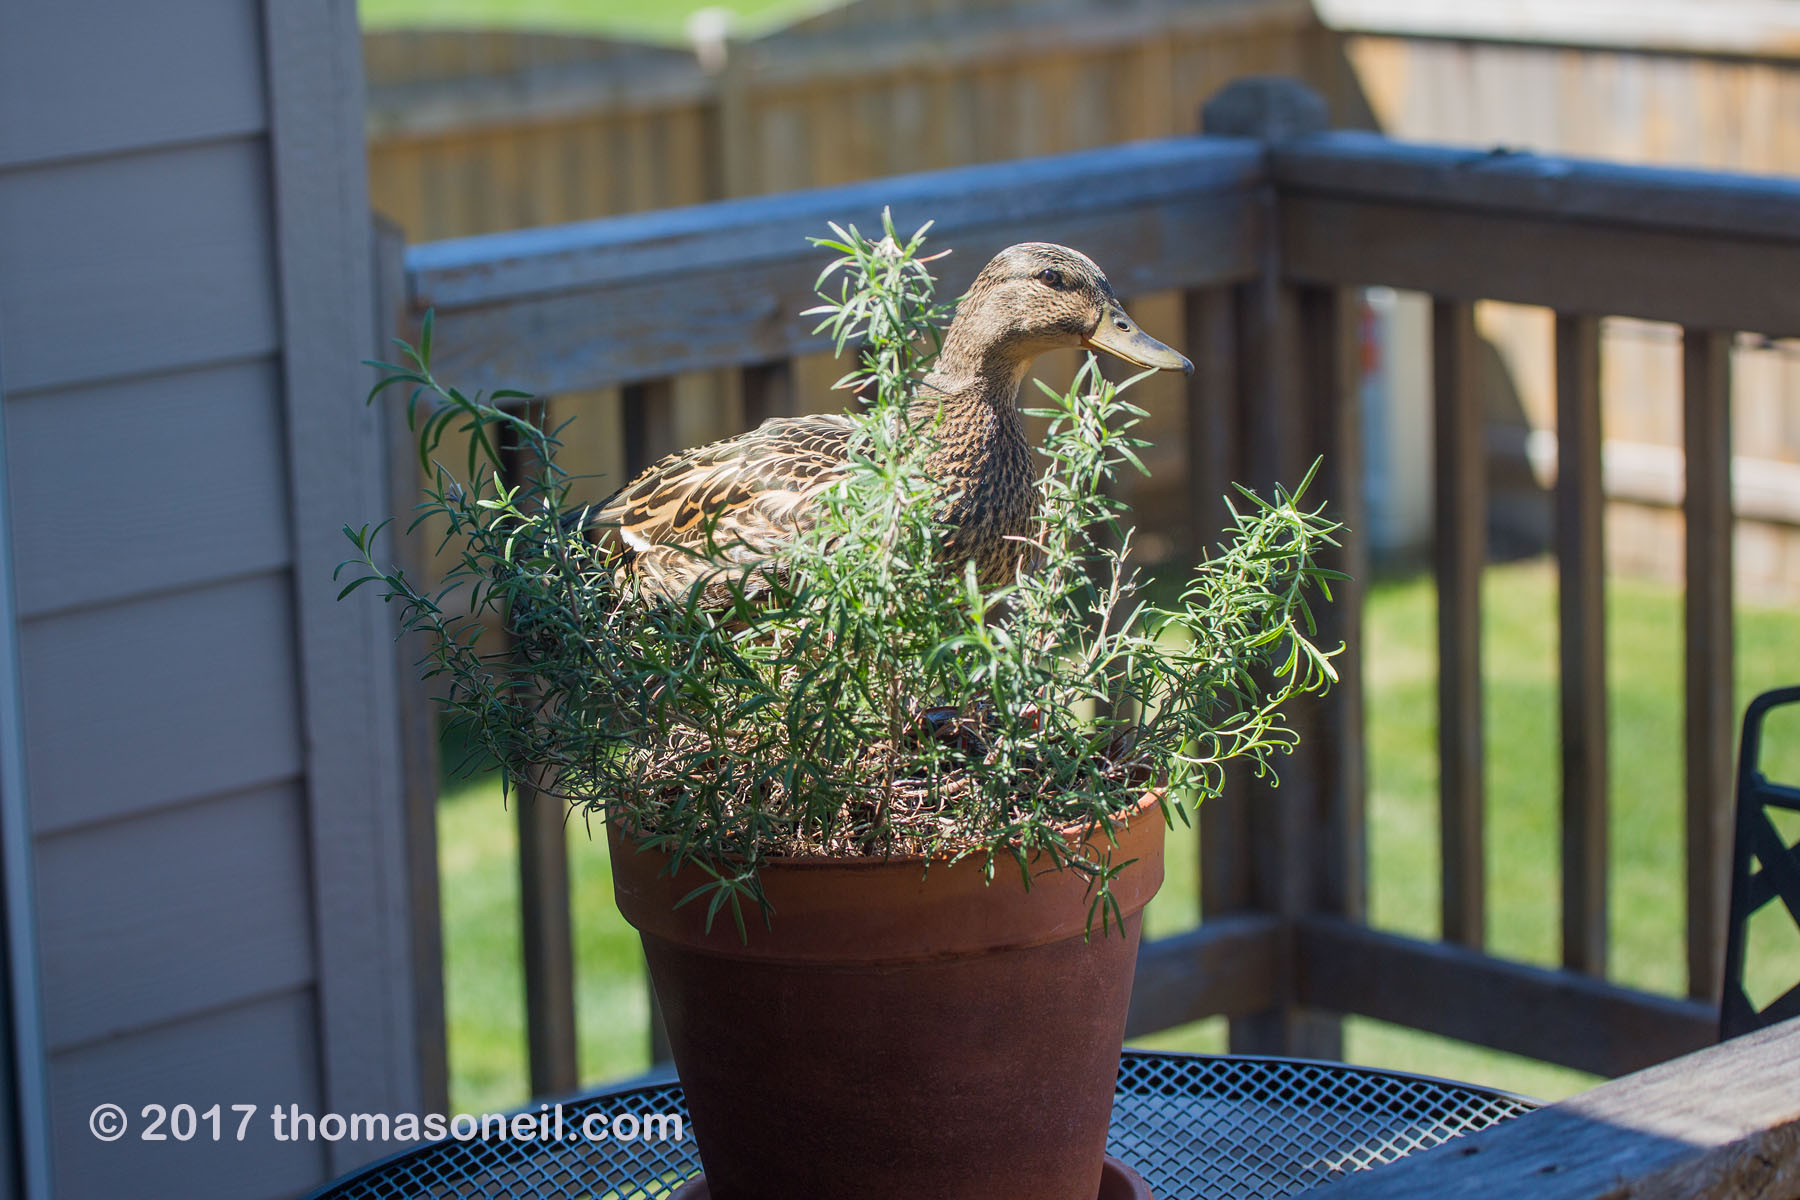 One of the weirder wildlife encounters I´ve had.  This duck seemed to be considering building a nest in the rosemary plant on my deck, April 2017.  Click for next photo.